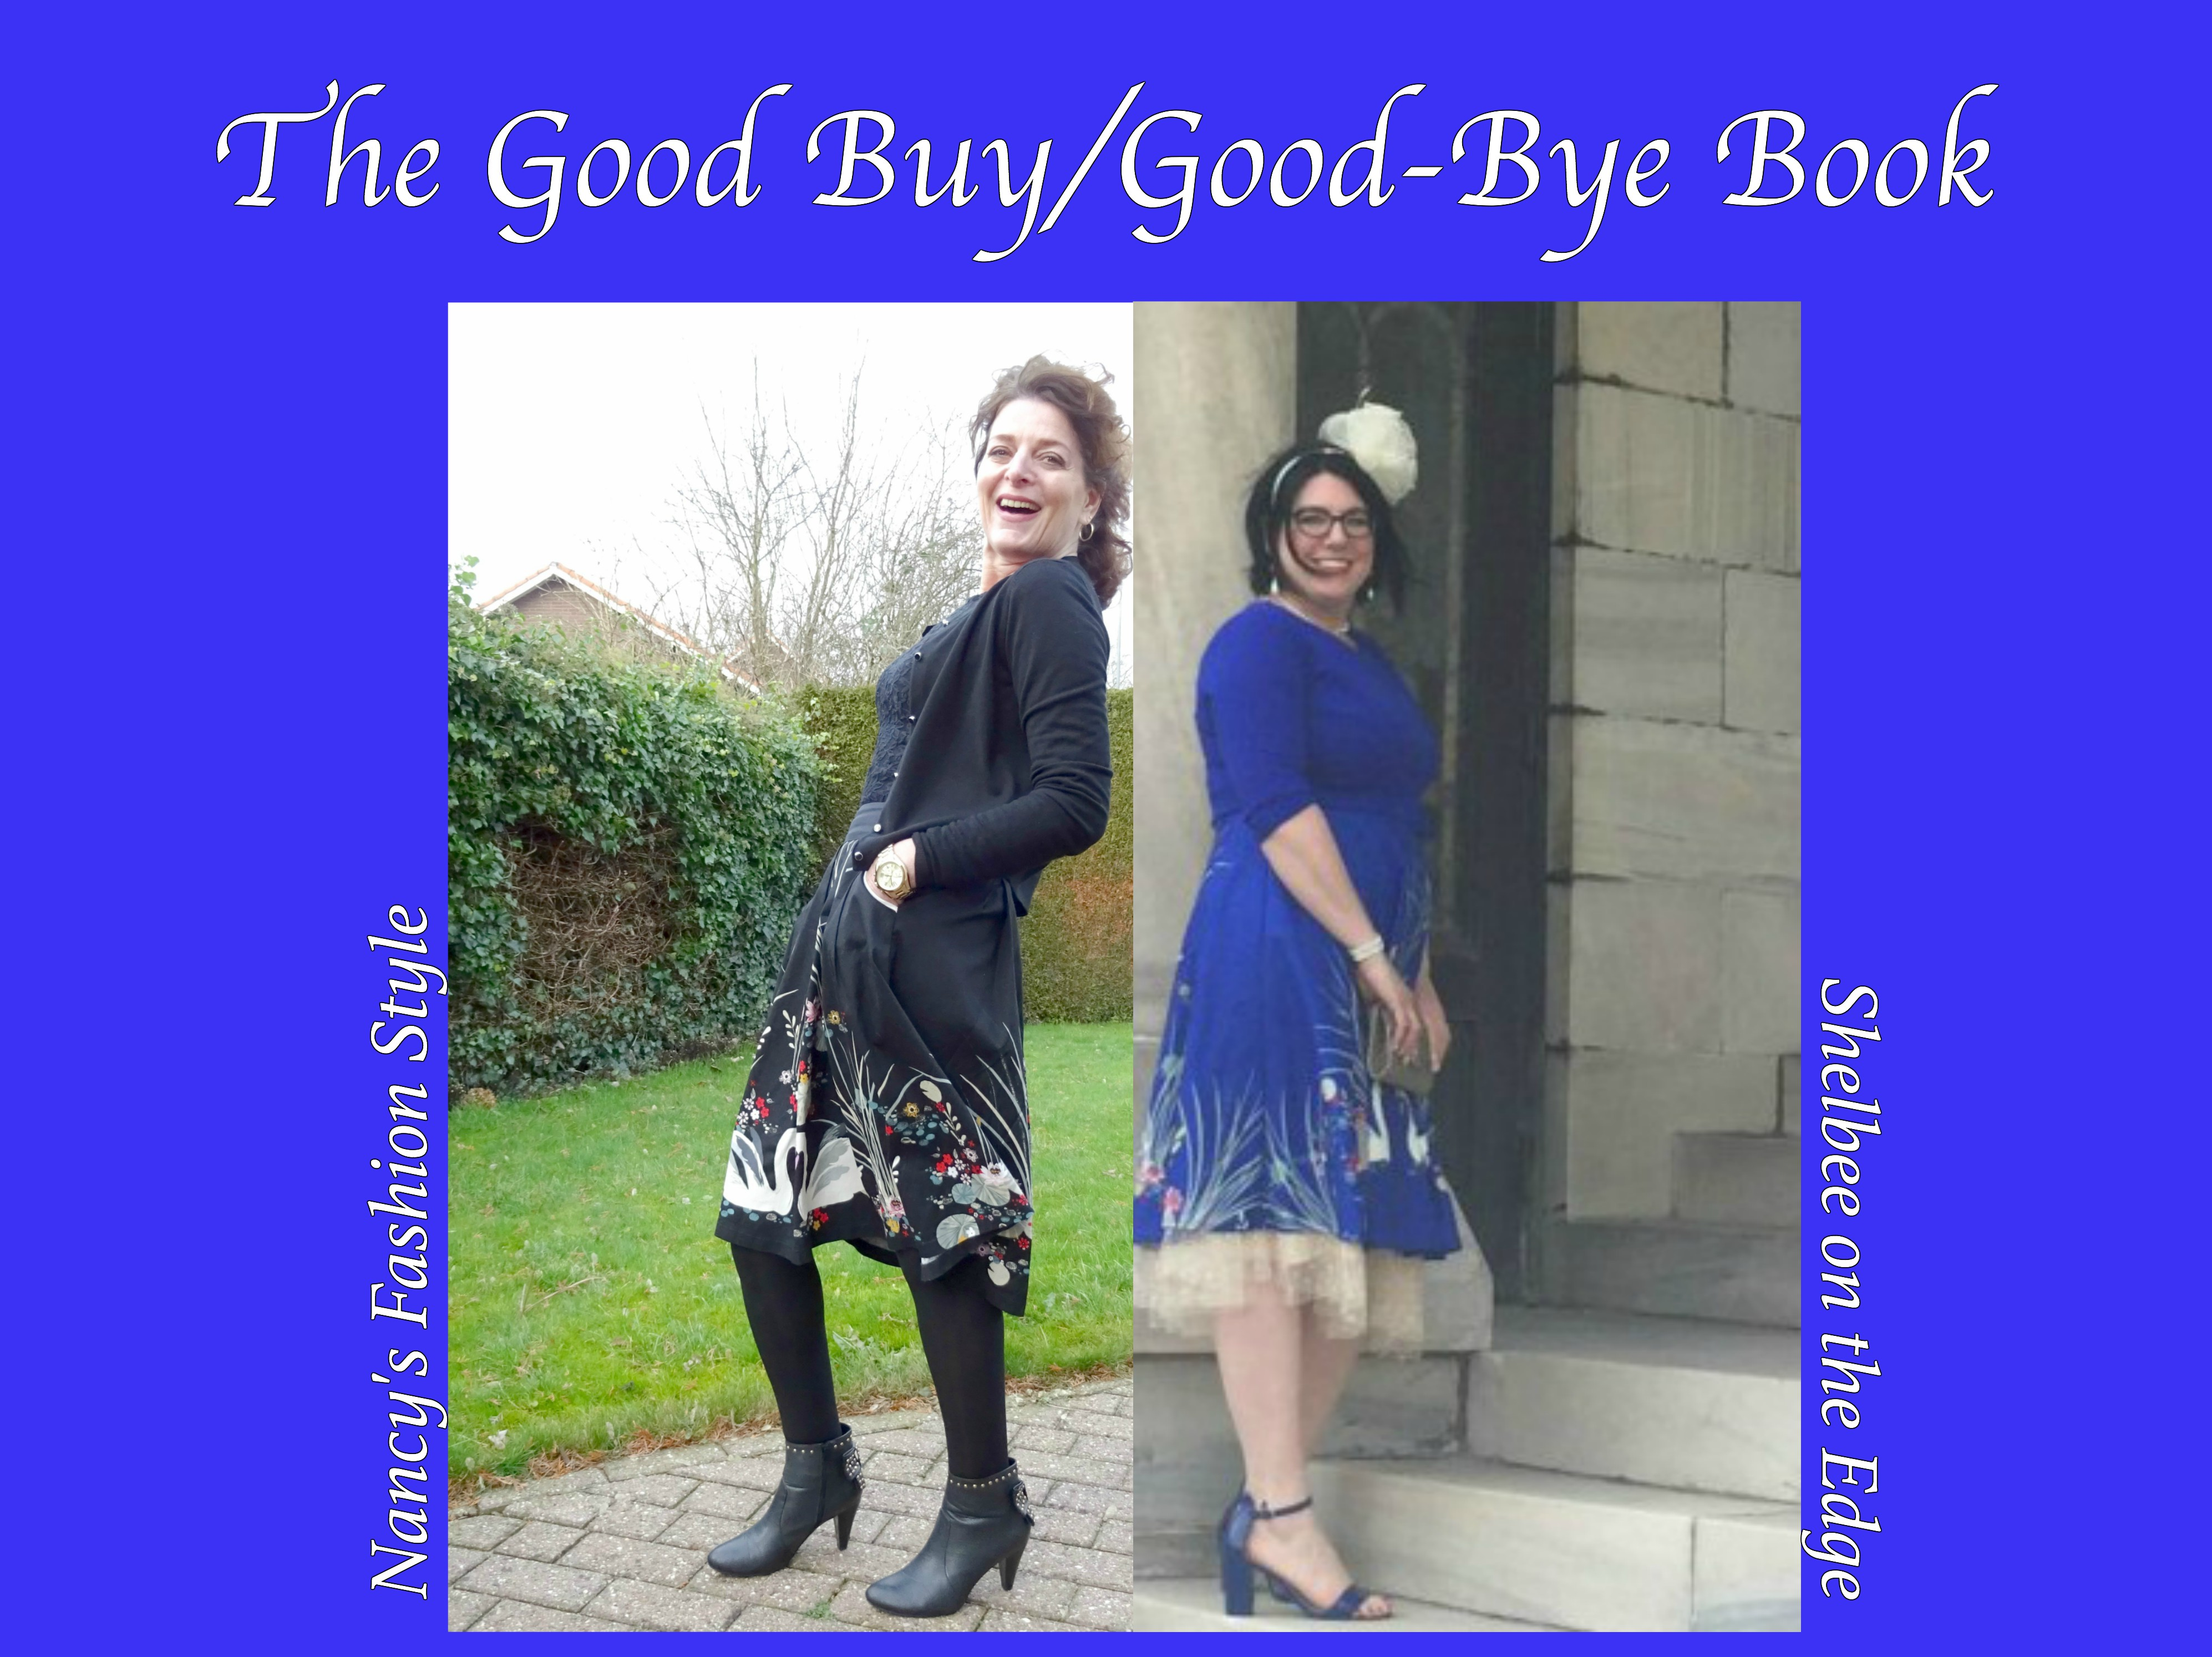 The Good Buy/Good-Bye Book